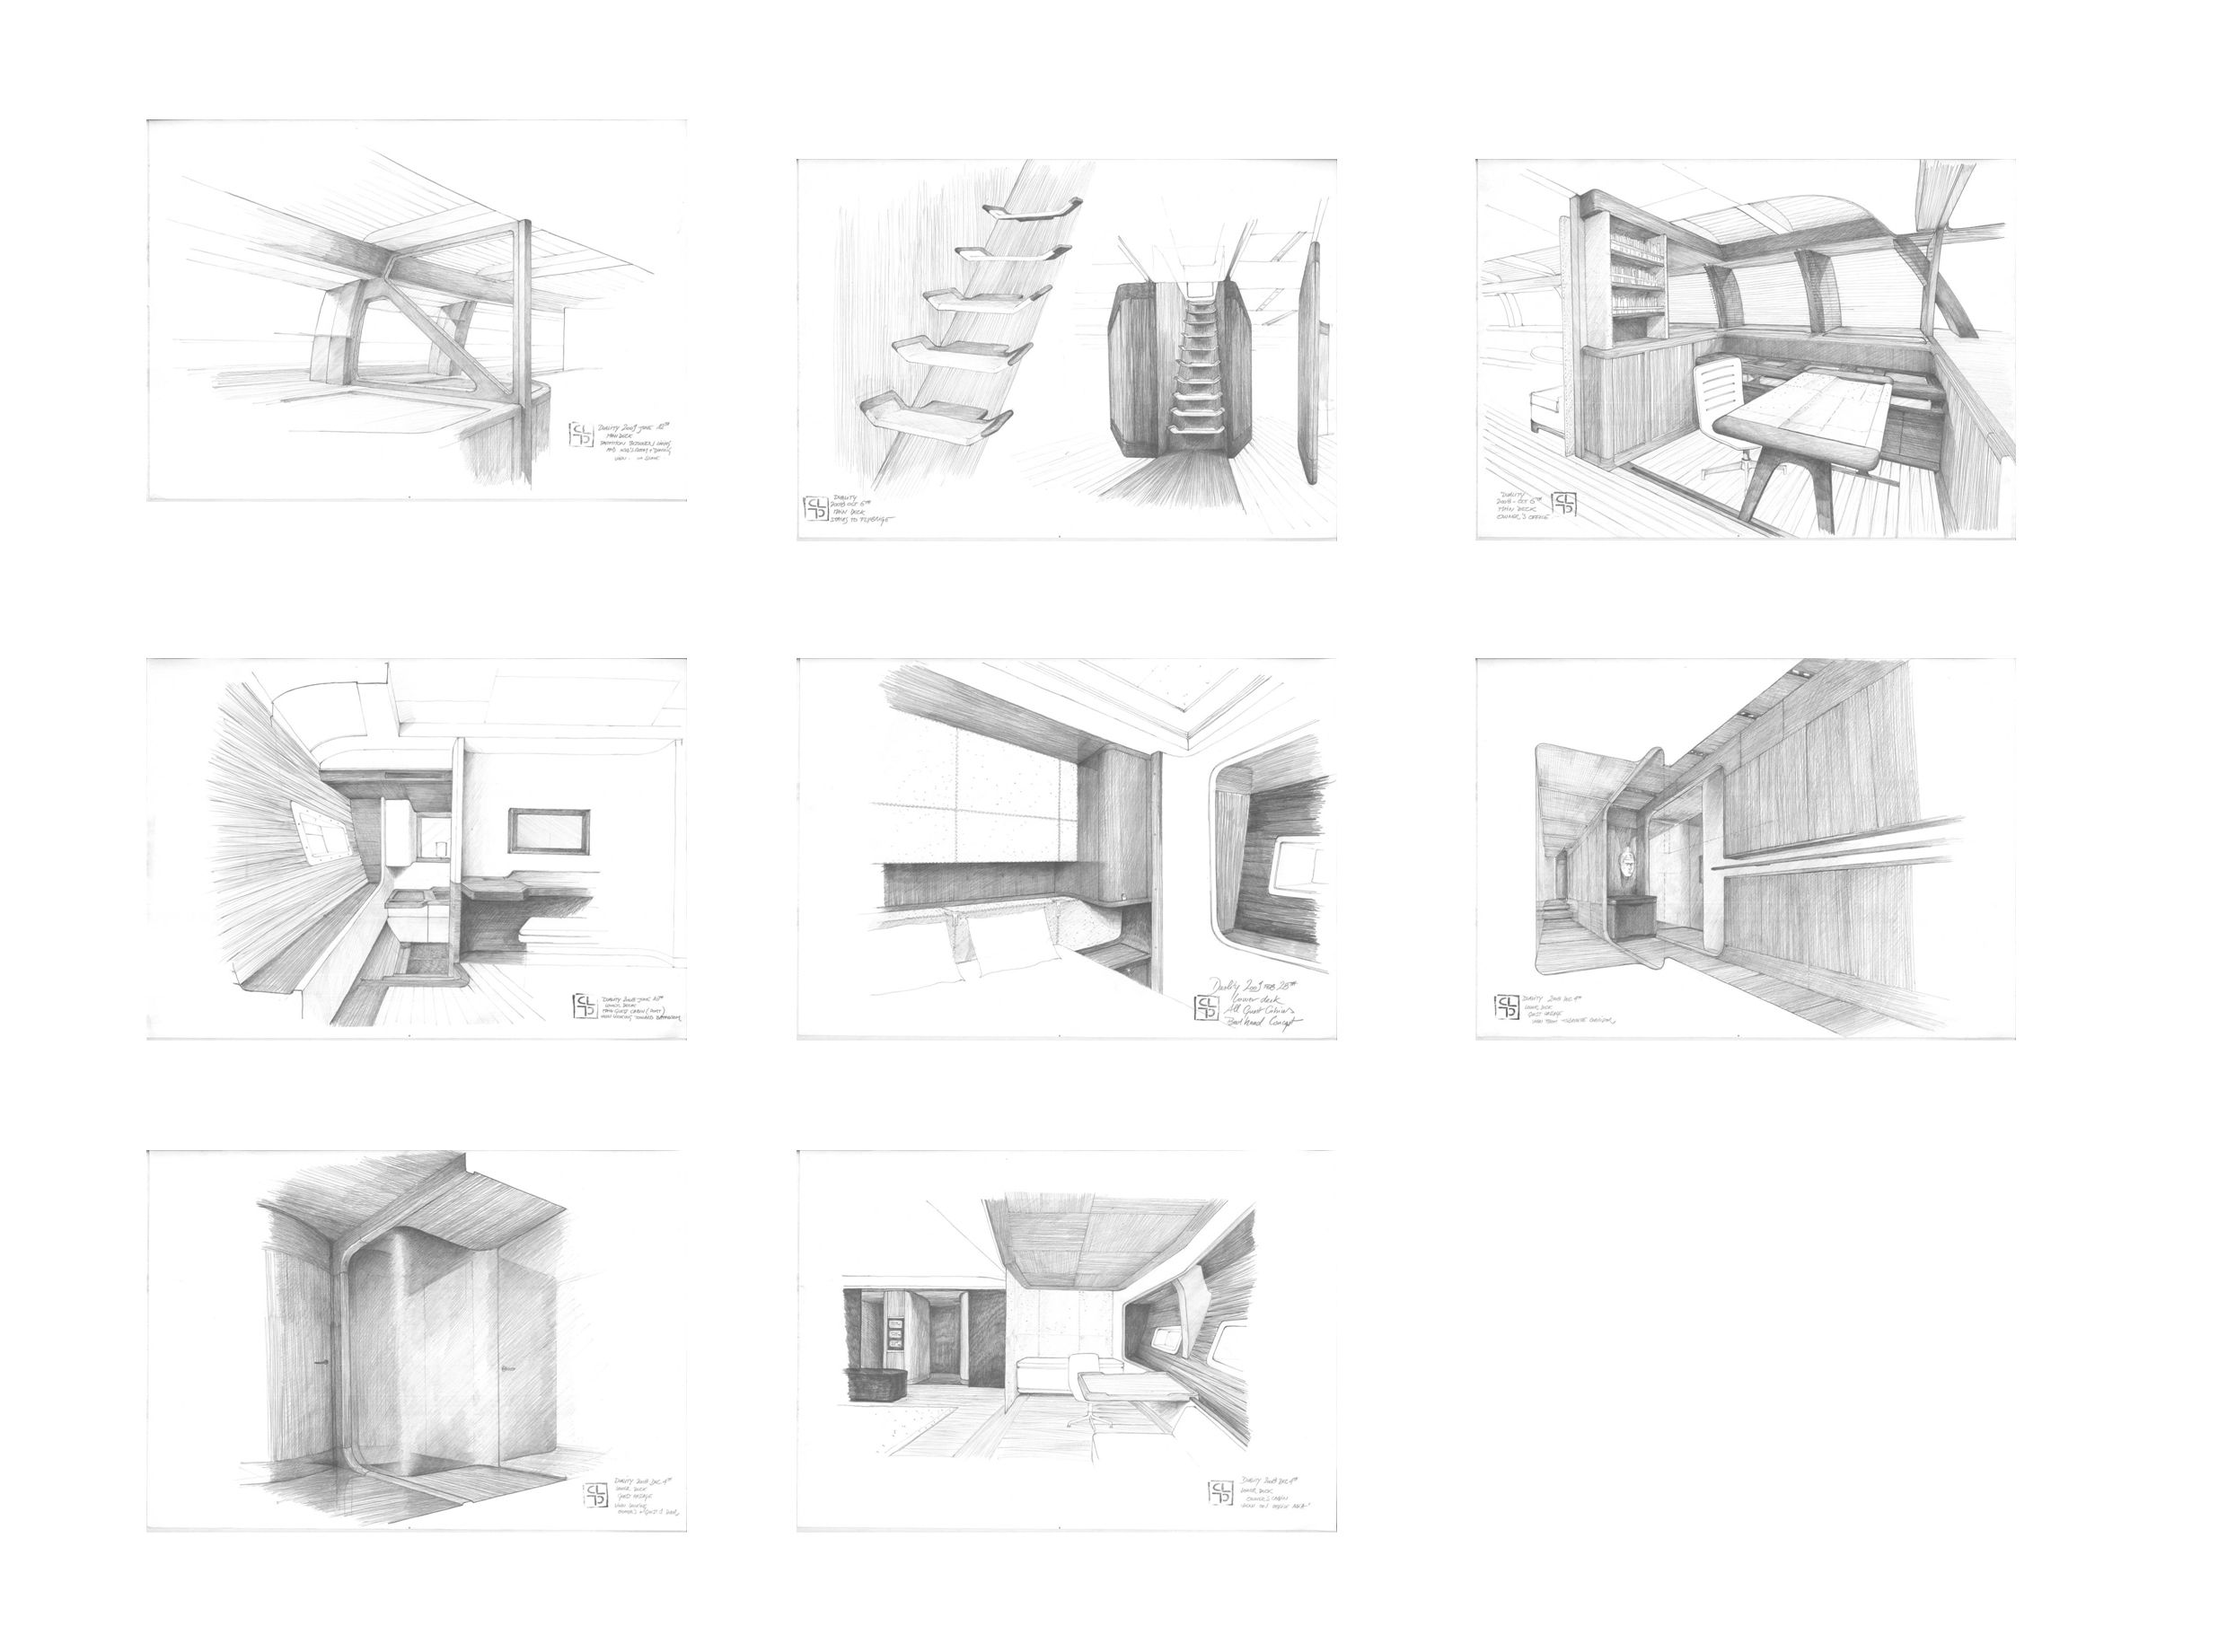 attractive interior designers drawings interior vivian diploma in retail hospitality design this drawing of interior design sketches pinterest